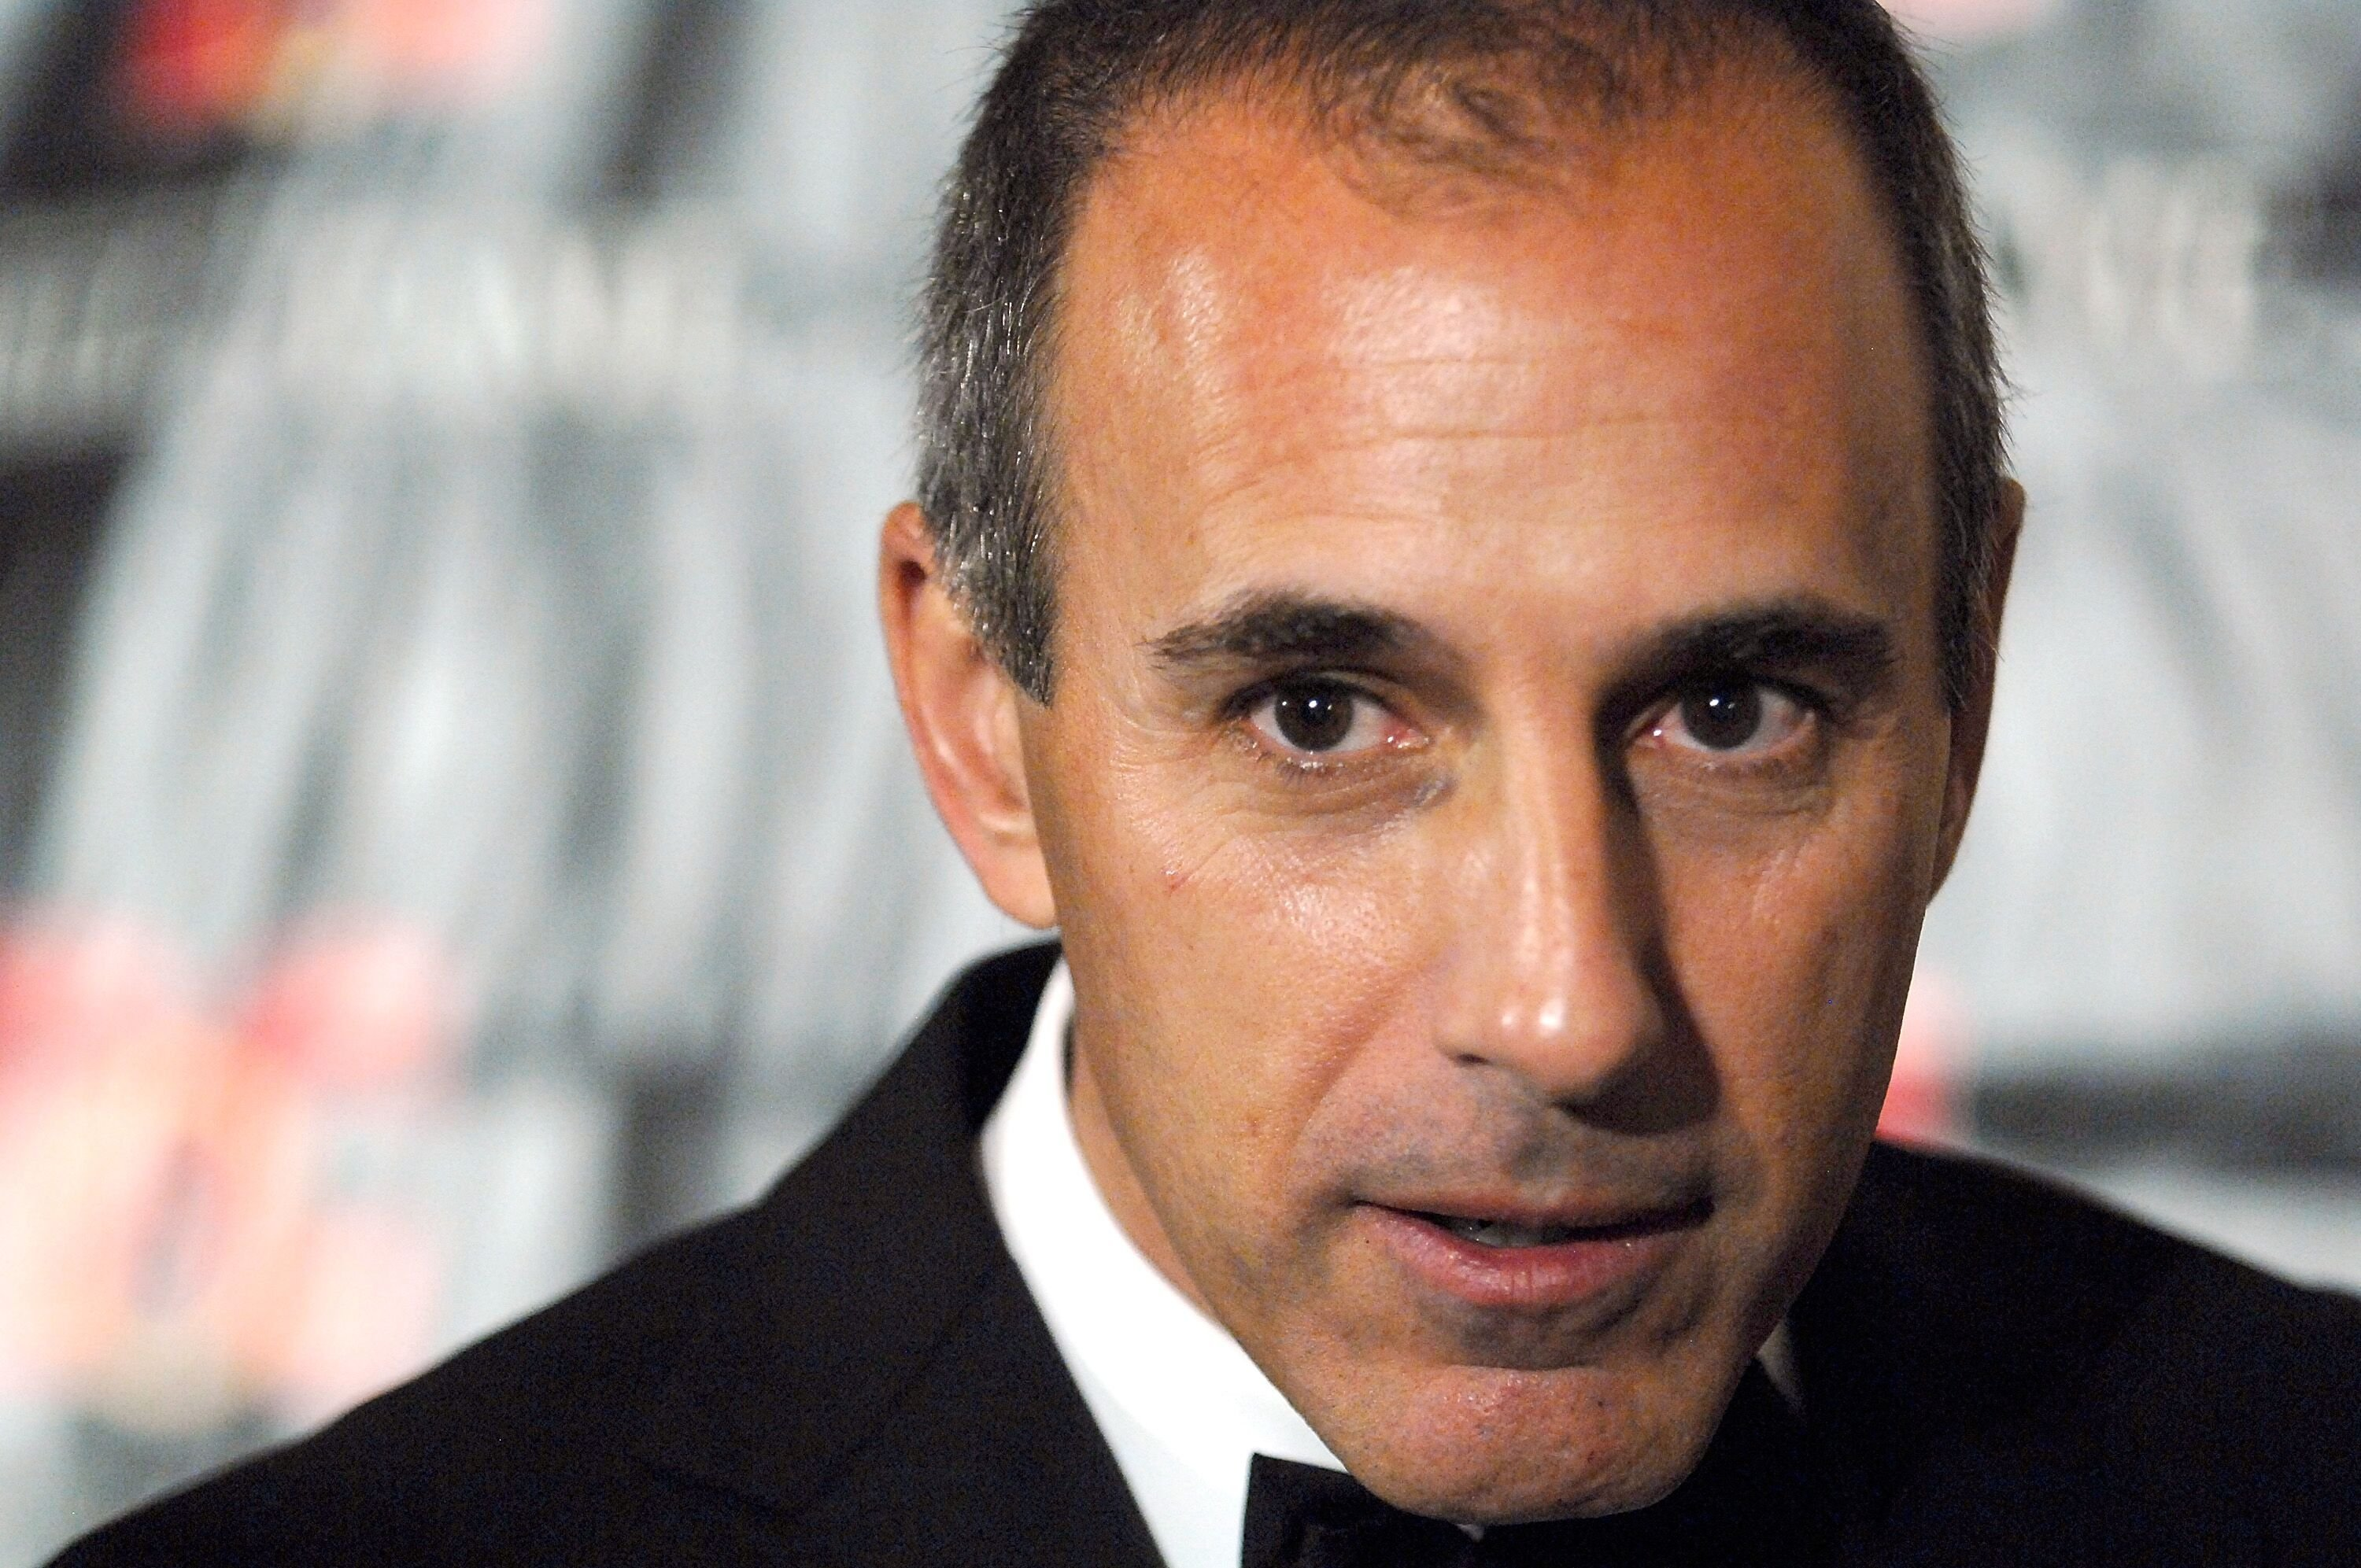 Matt Lauer at the 18th Annual Broadcasting & Cable Hall of Fame Awards on October 21, 2008, in New York City   Photo: Joe Corrigan/Getty Images